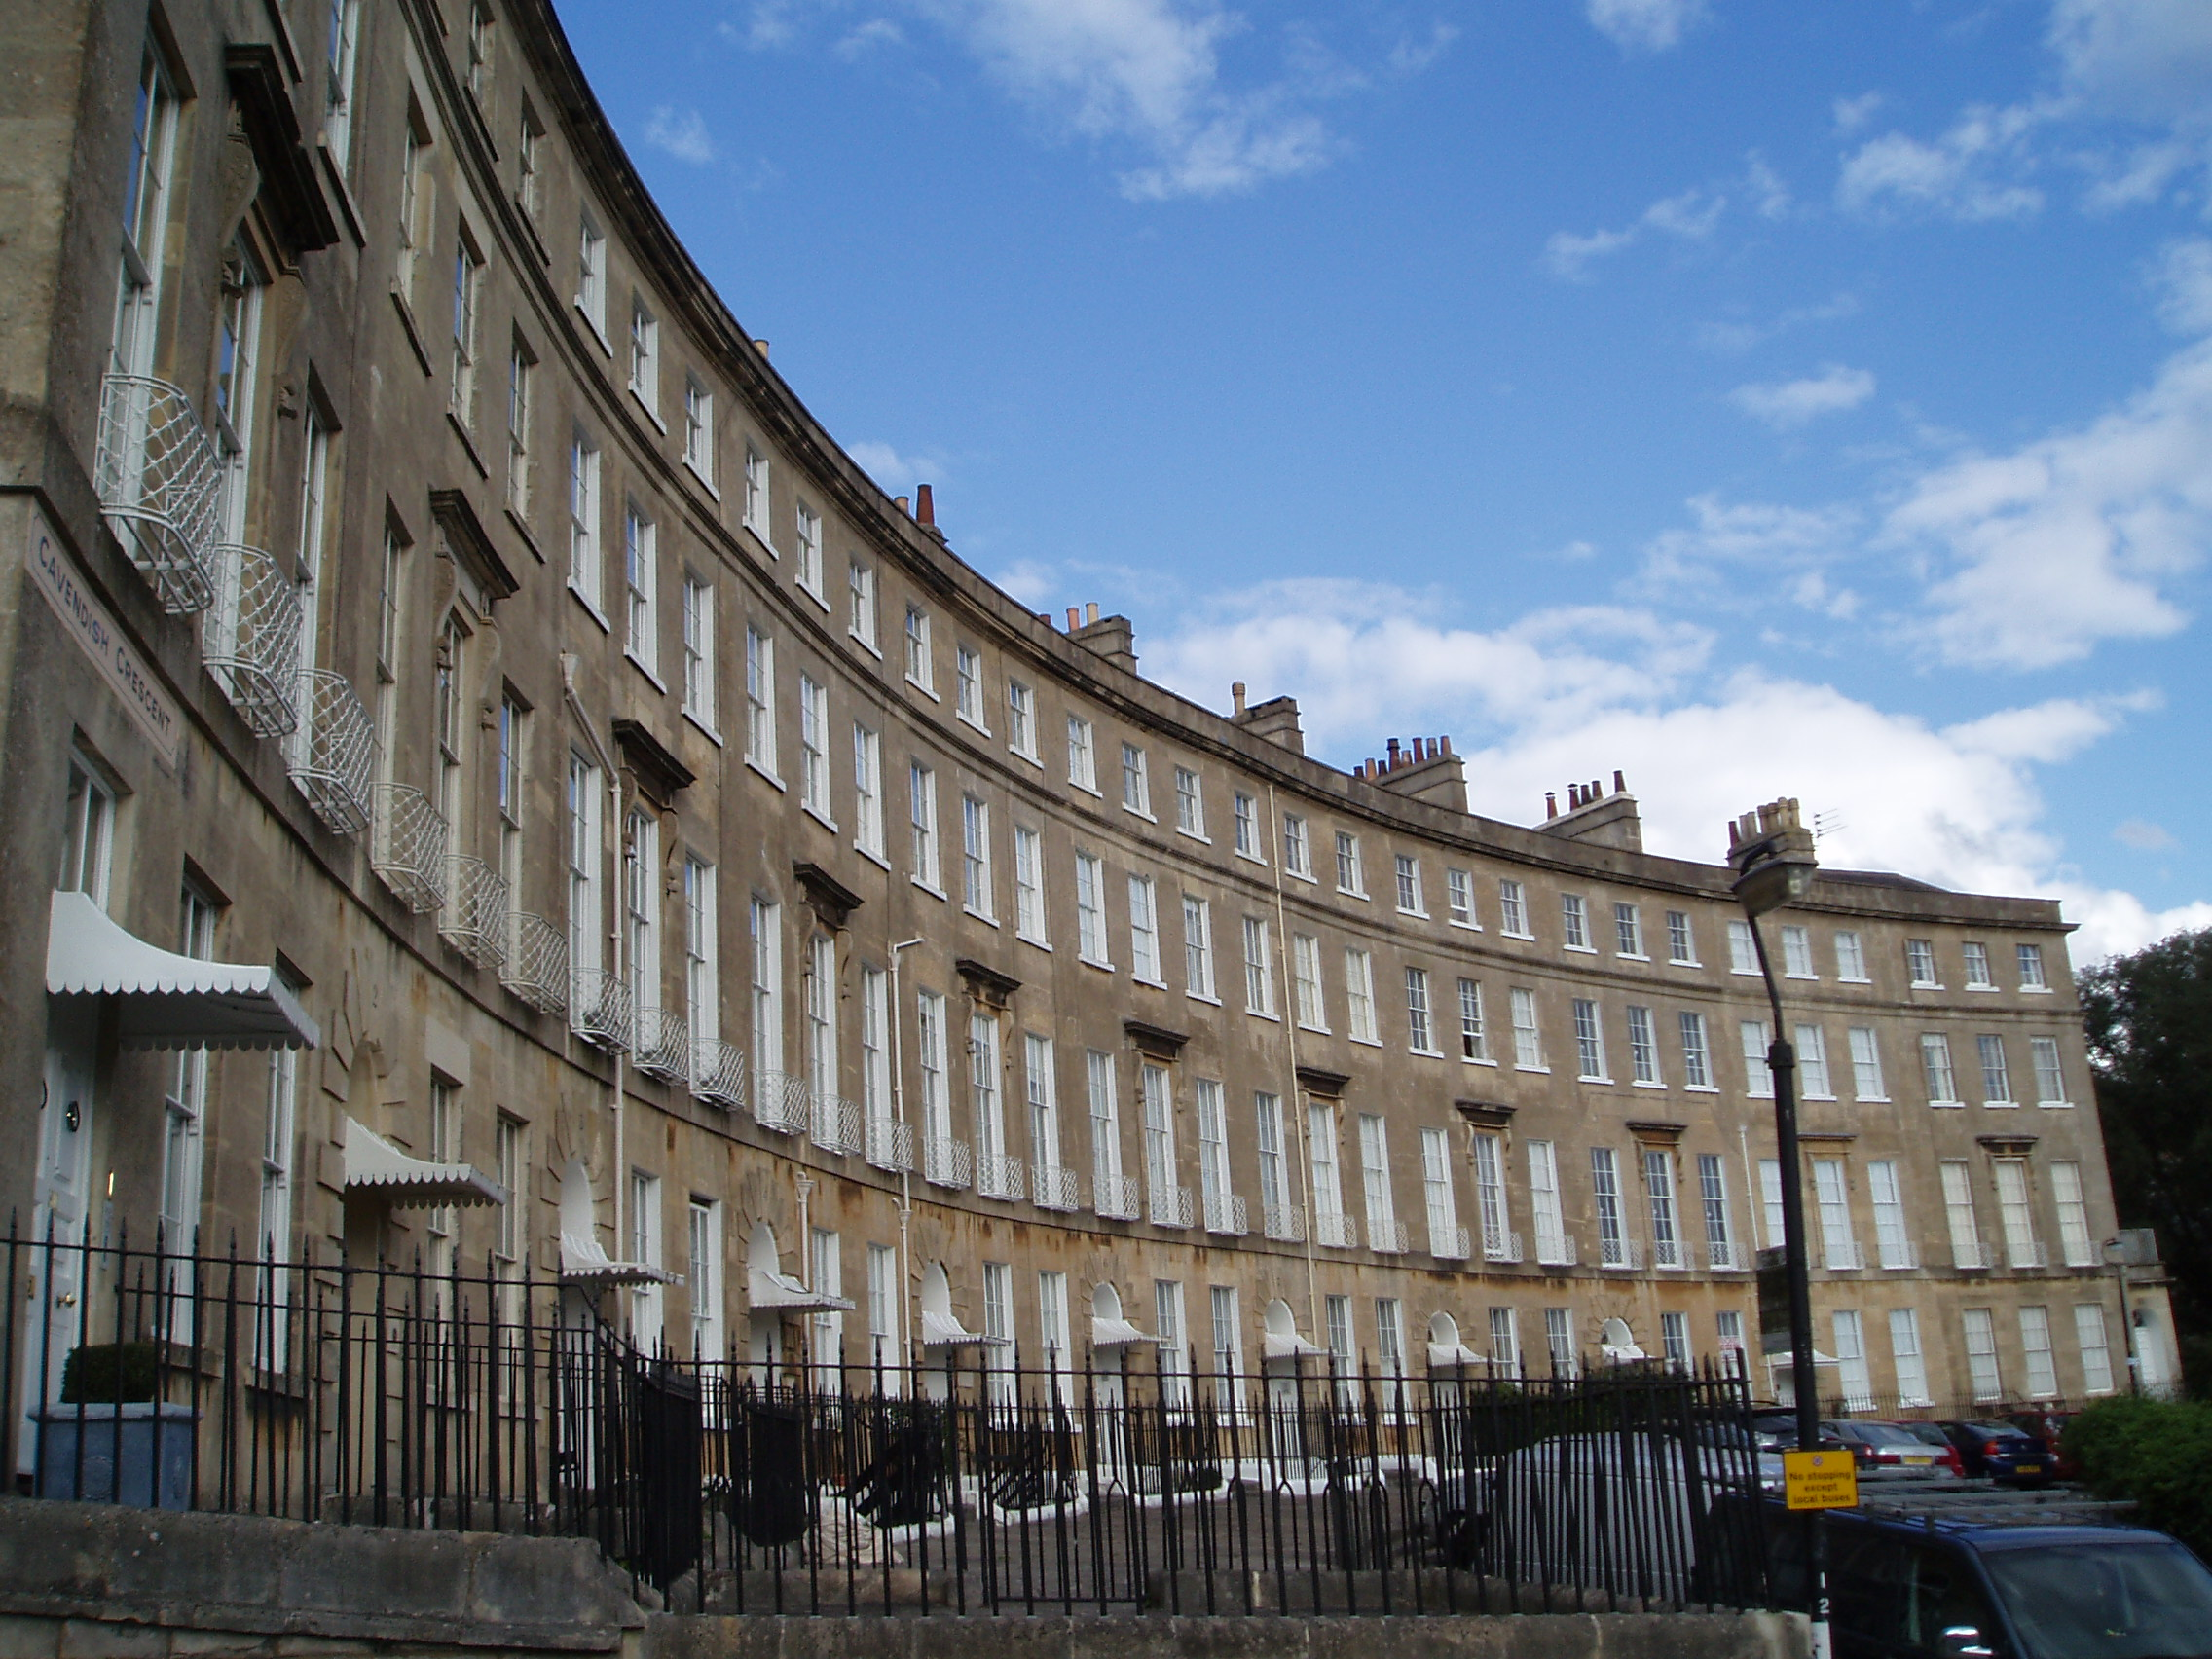 Bath Images cavendish crescent, bath | mapio